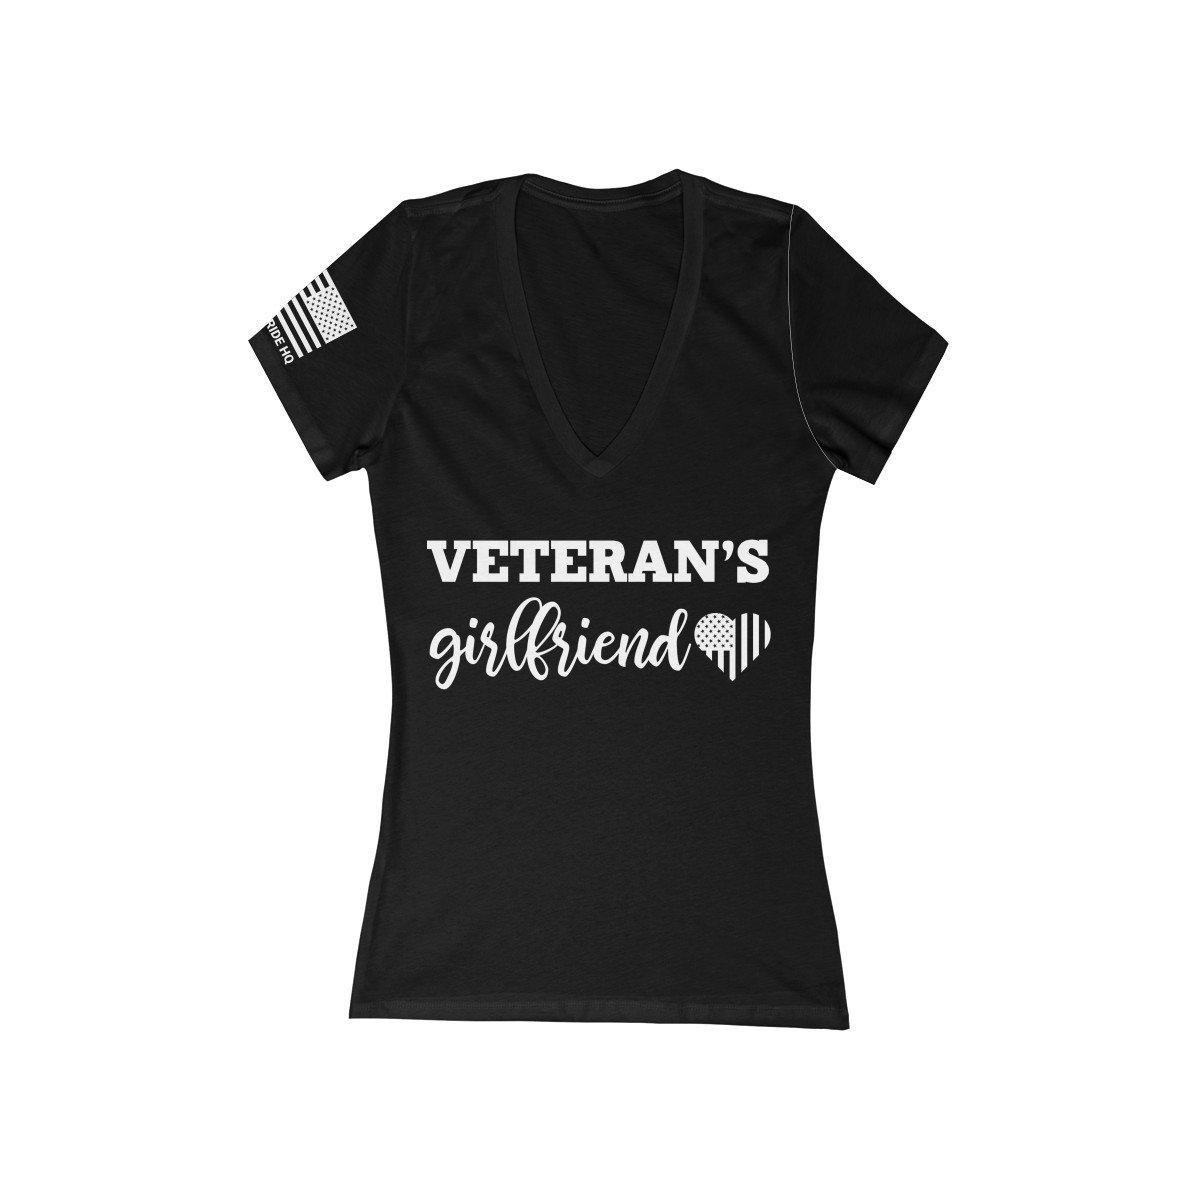 Veteran's Girlfriend Women's V-Neck Tee